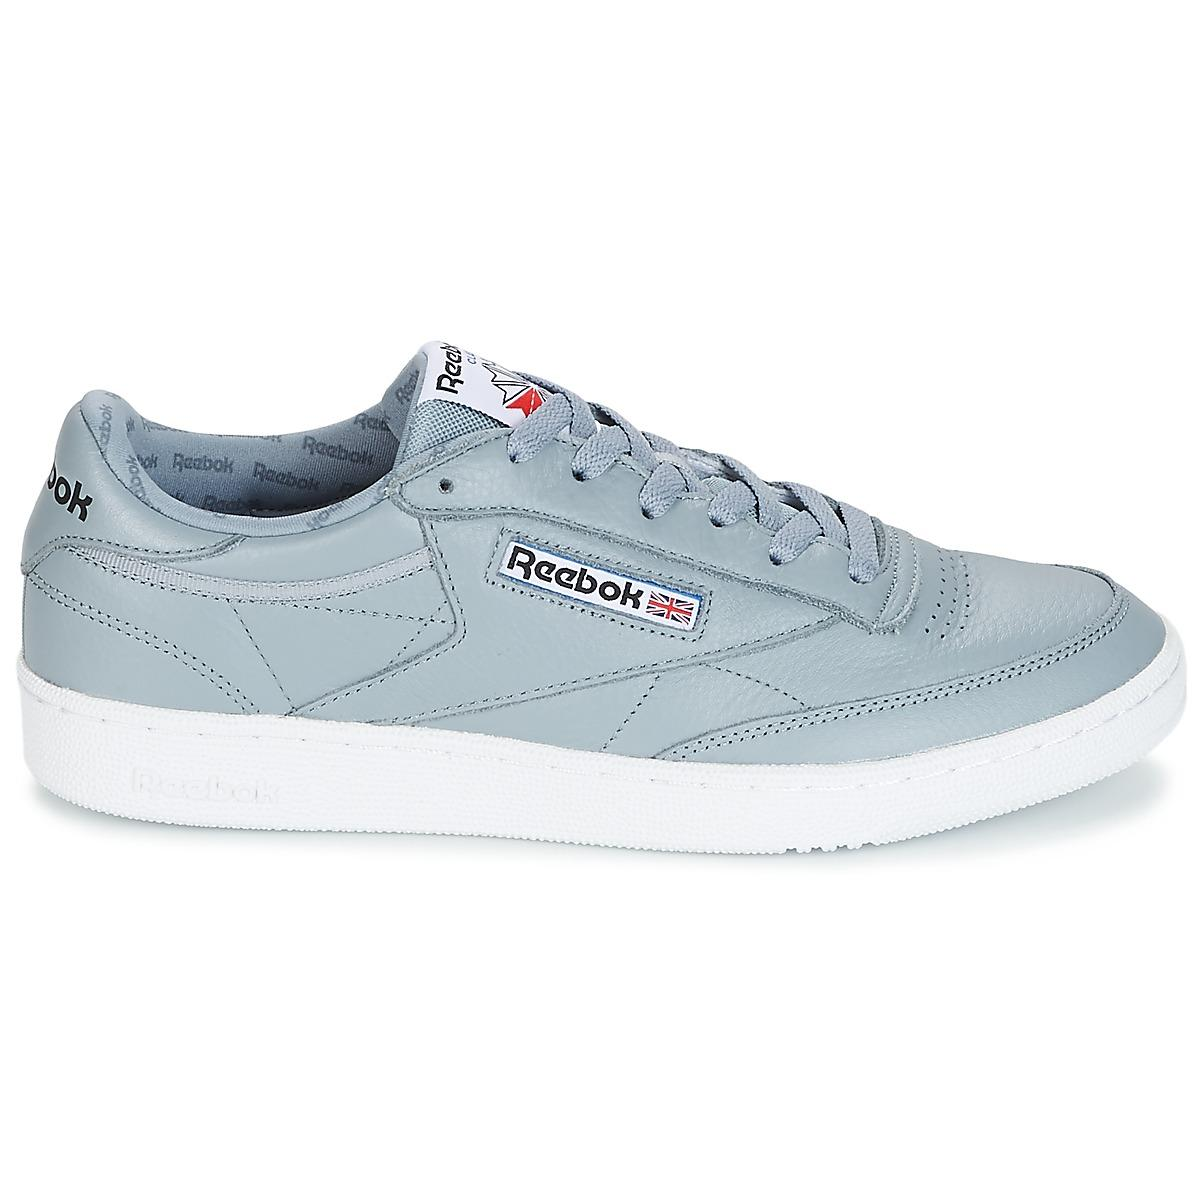 e03ab328e42a4 Reebok Club C 85 Melted To Me Shoes (trainers) in Gray for Men ...